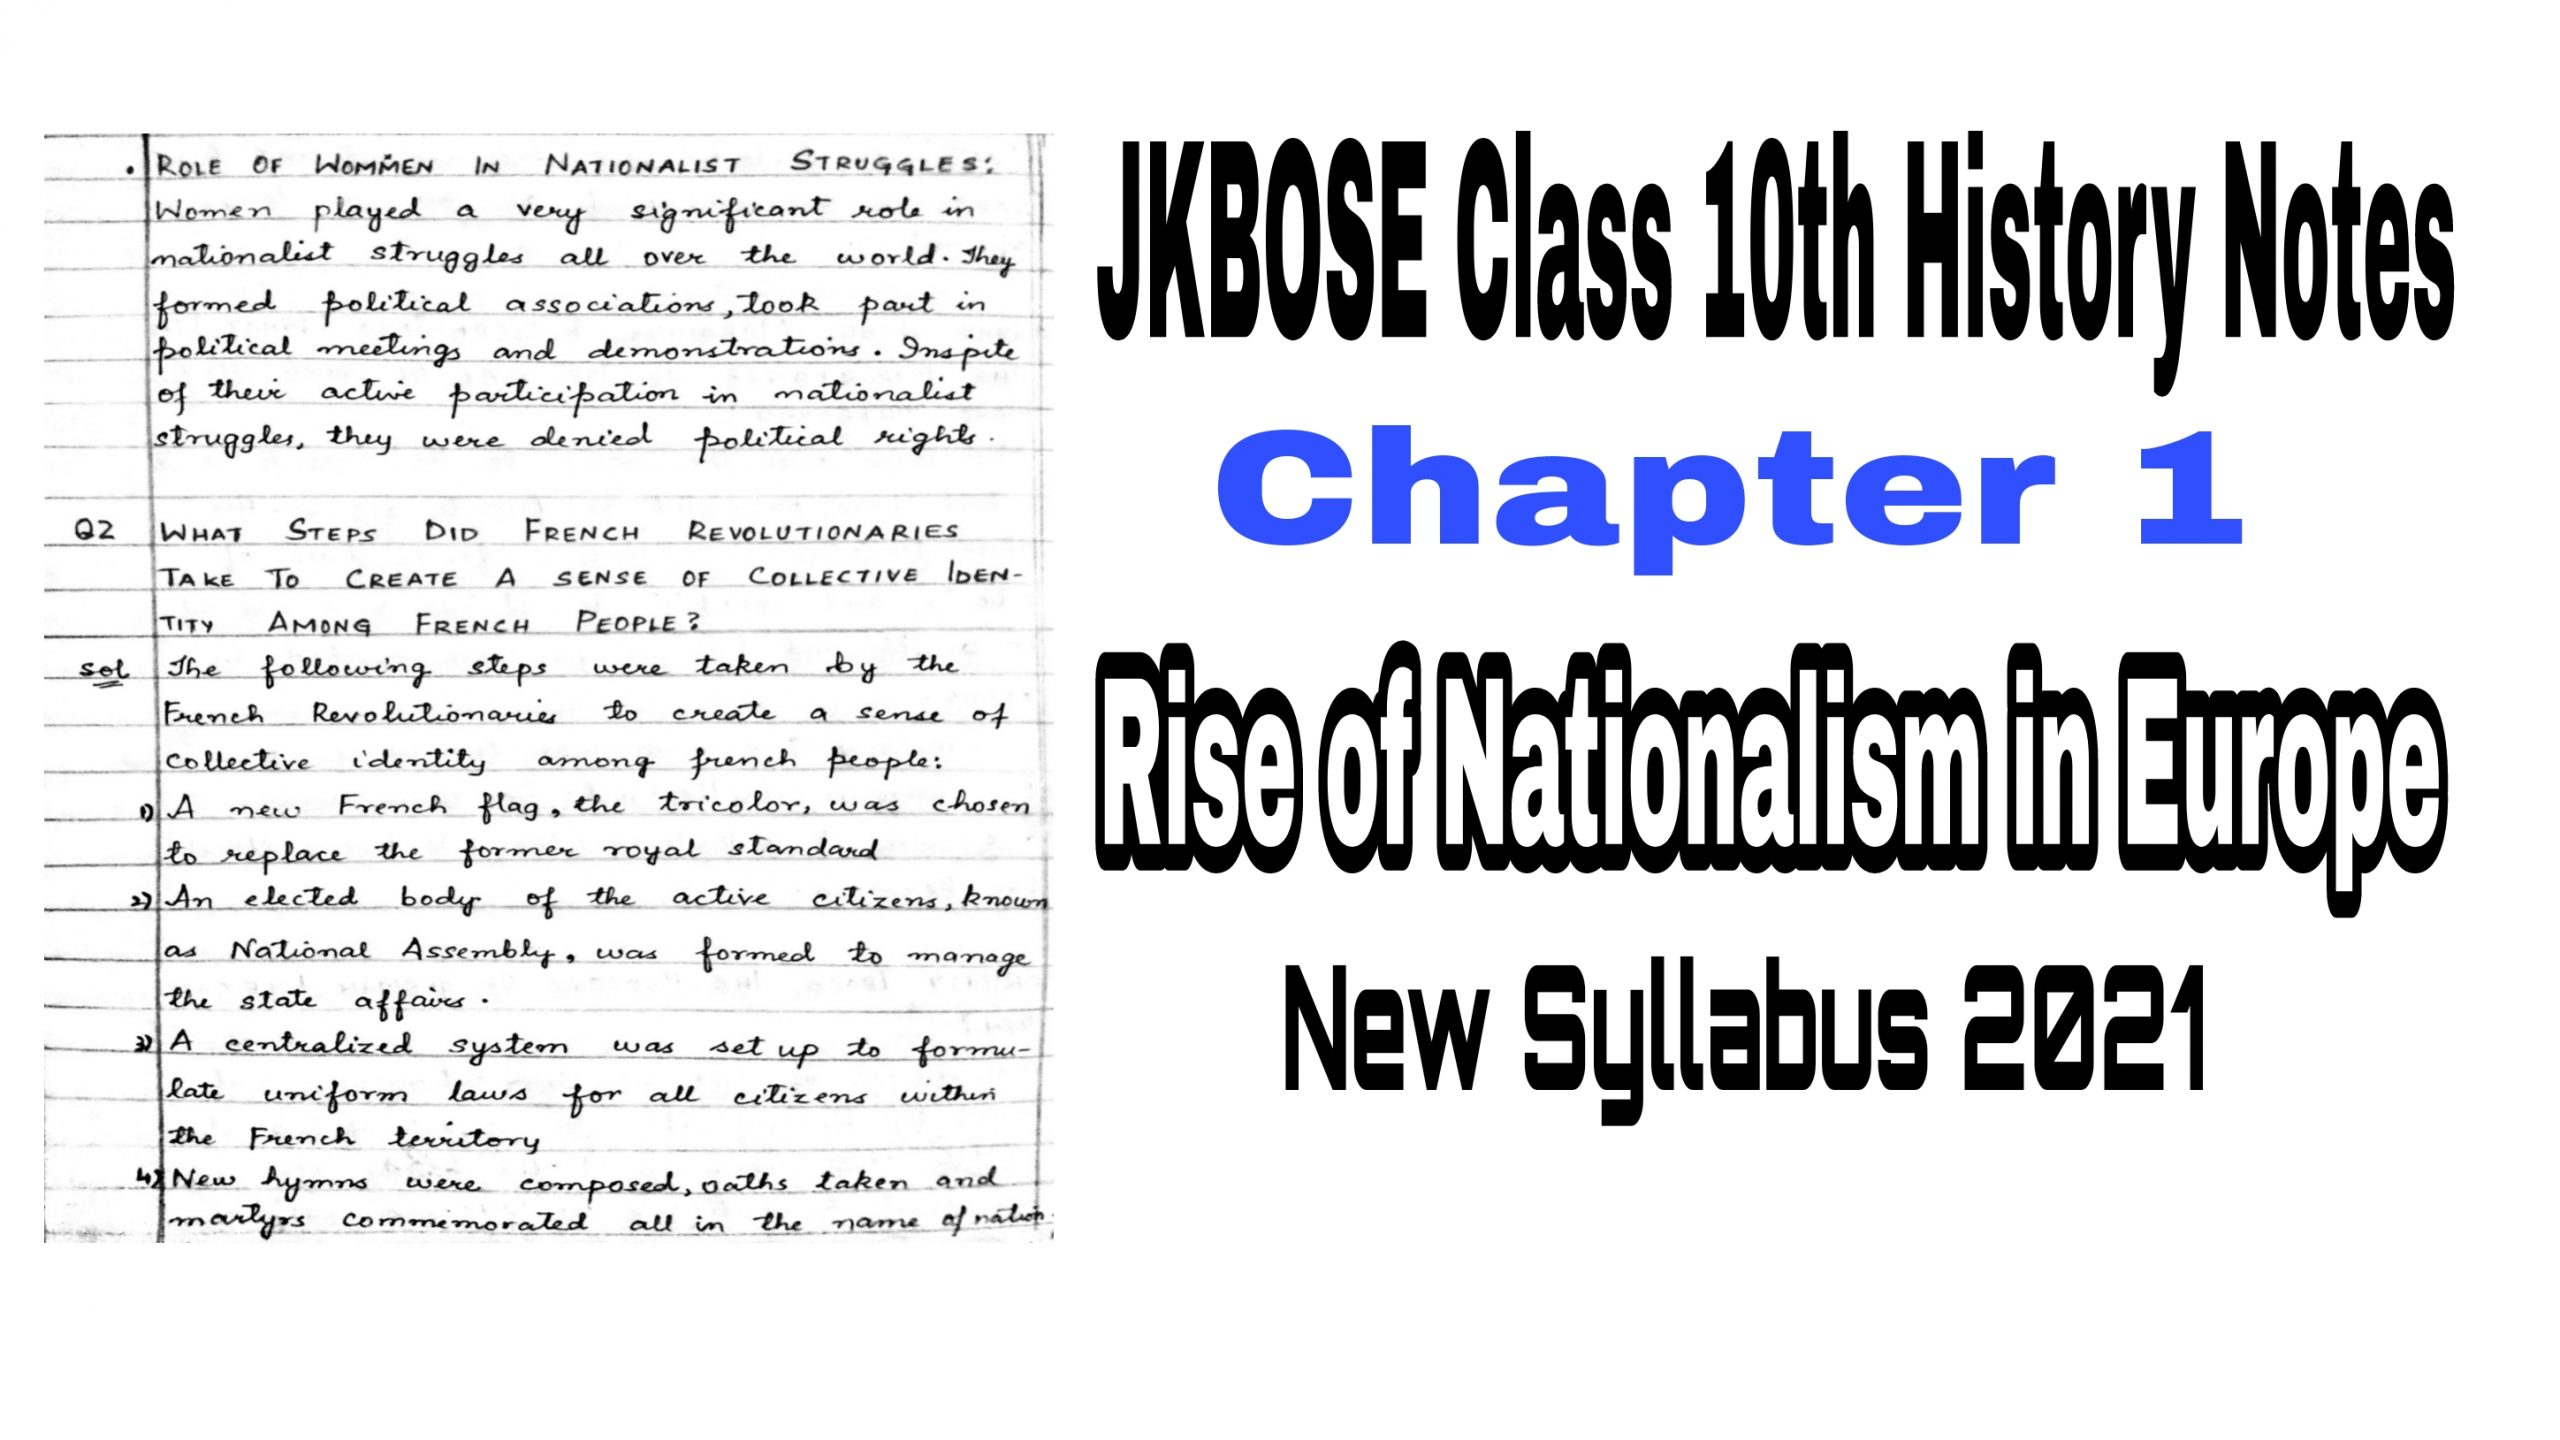 class 10th history chapter 1 Notes Jkbose rise of nationalism in europe New syllabus 2021 pdf download